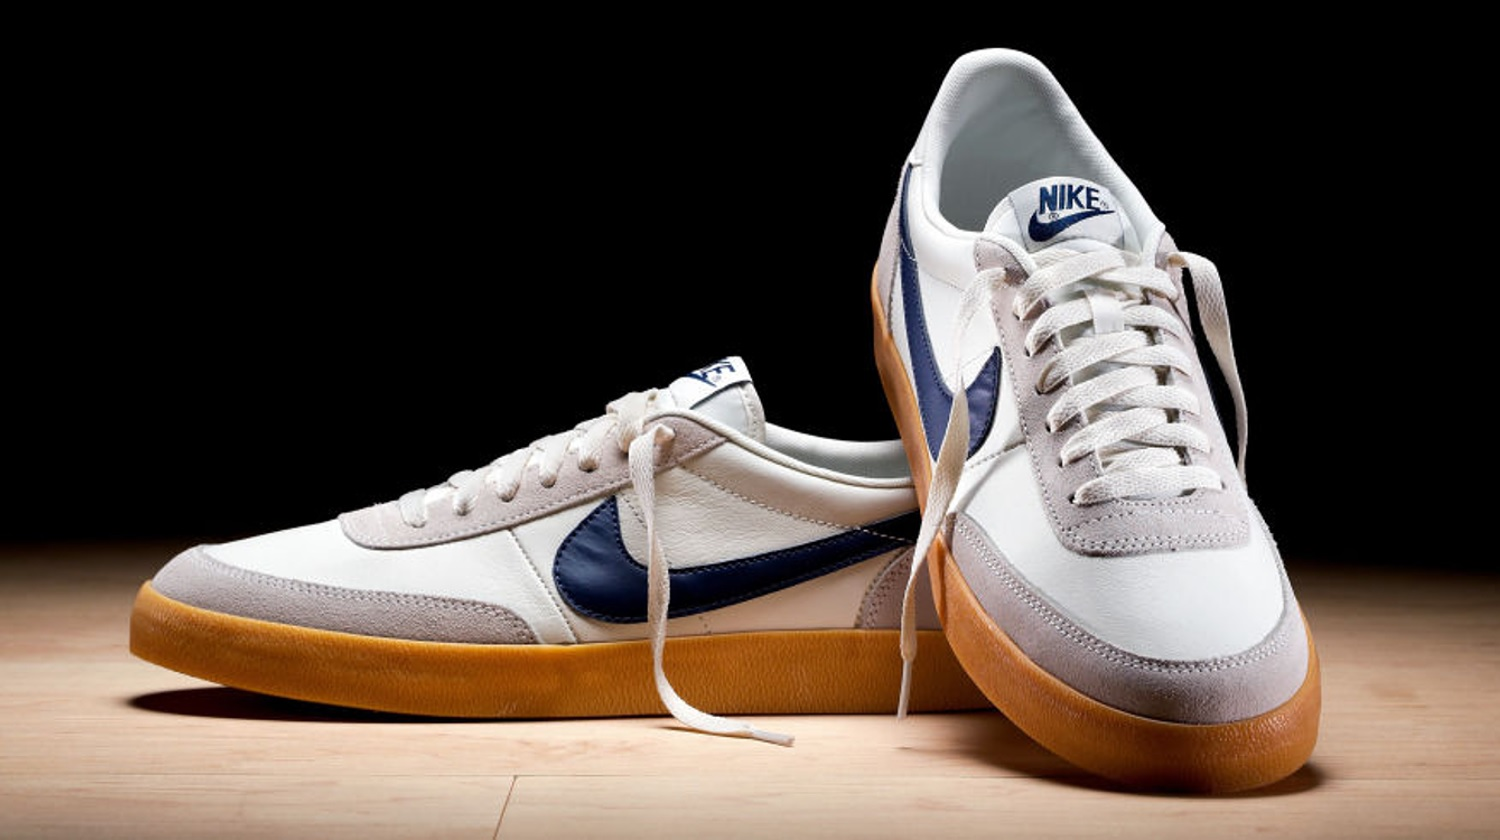 Nike Killshot sneakers by J. Crew